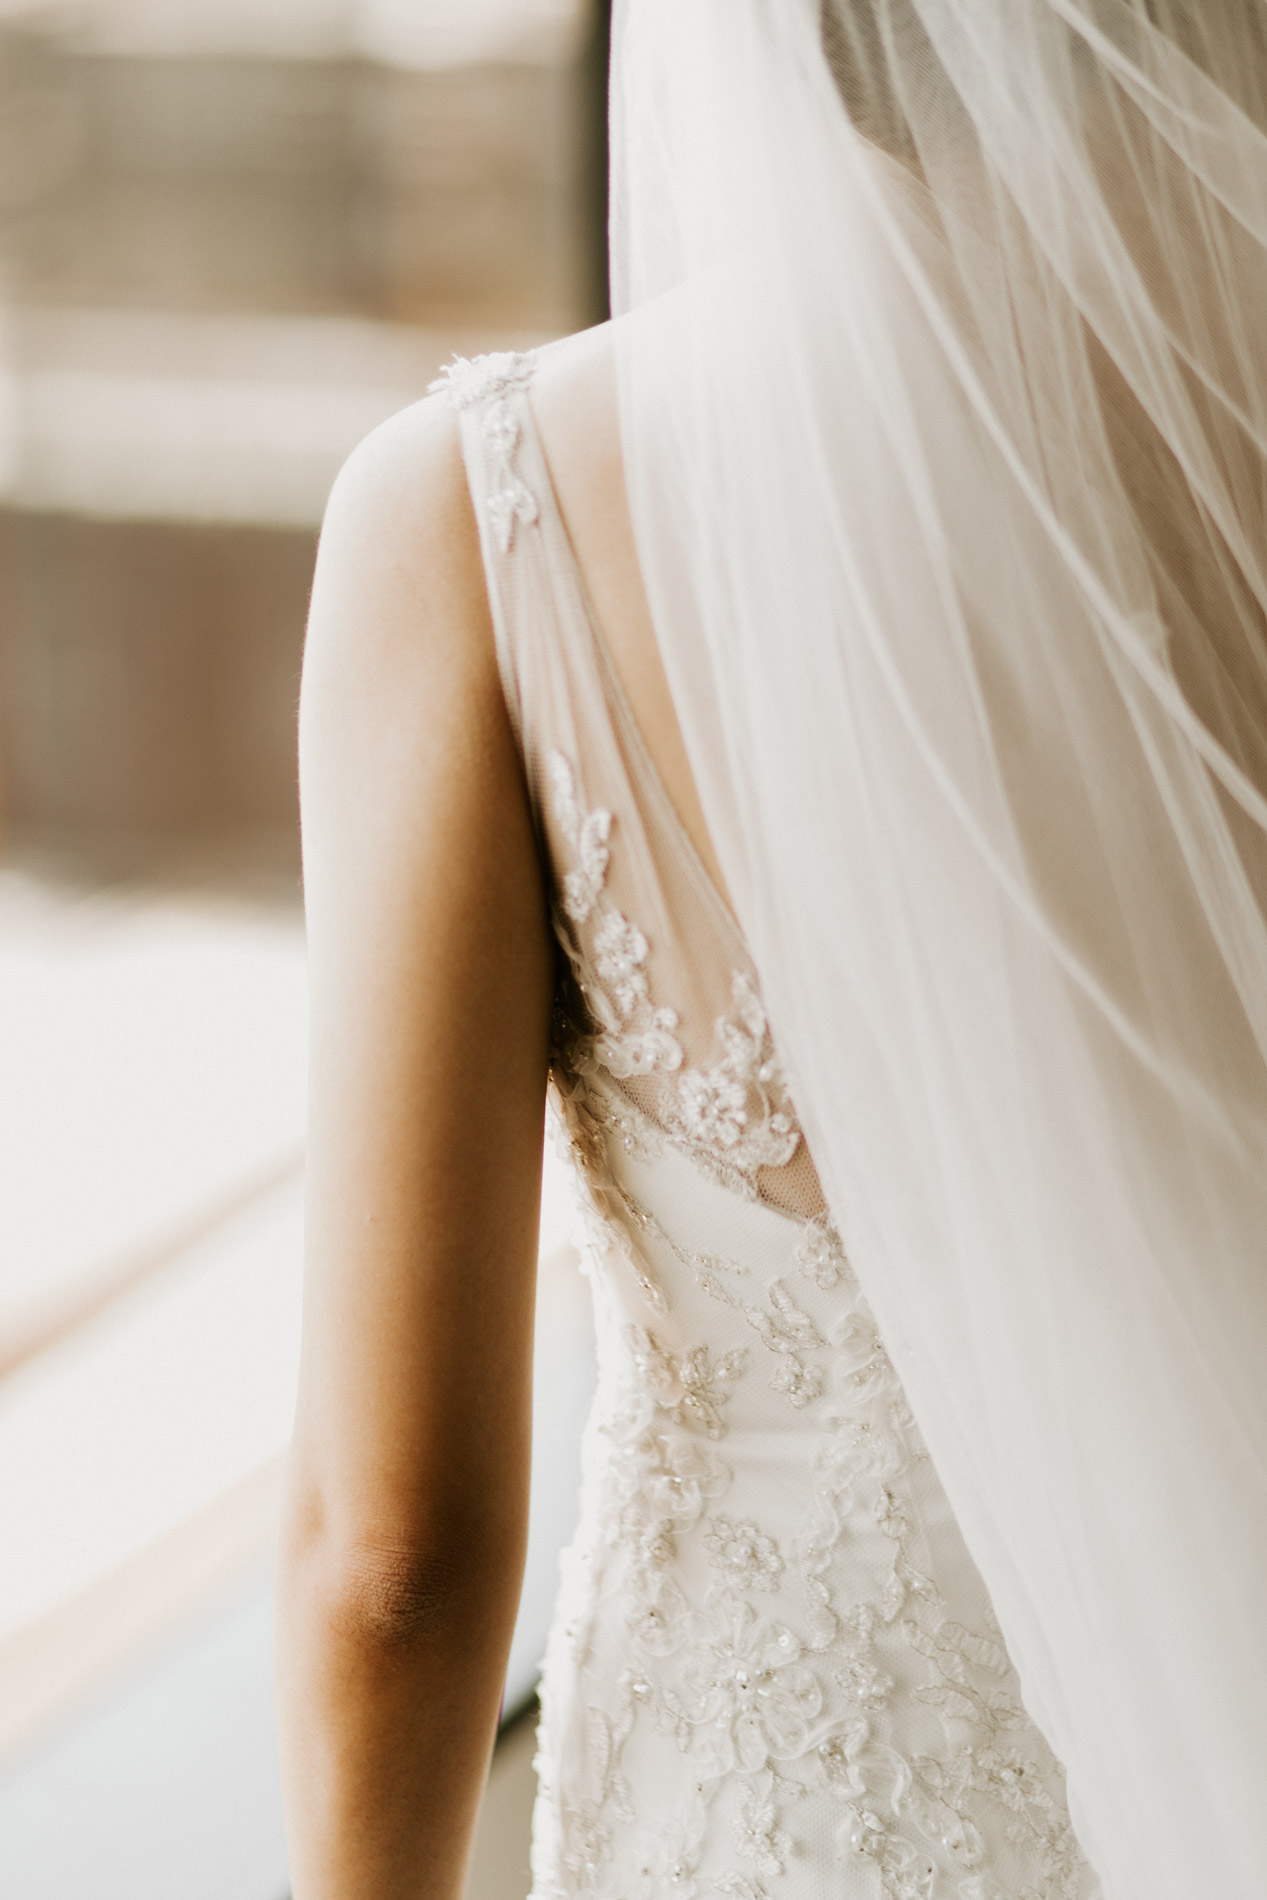 wedding dress detail shot